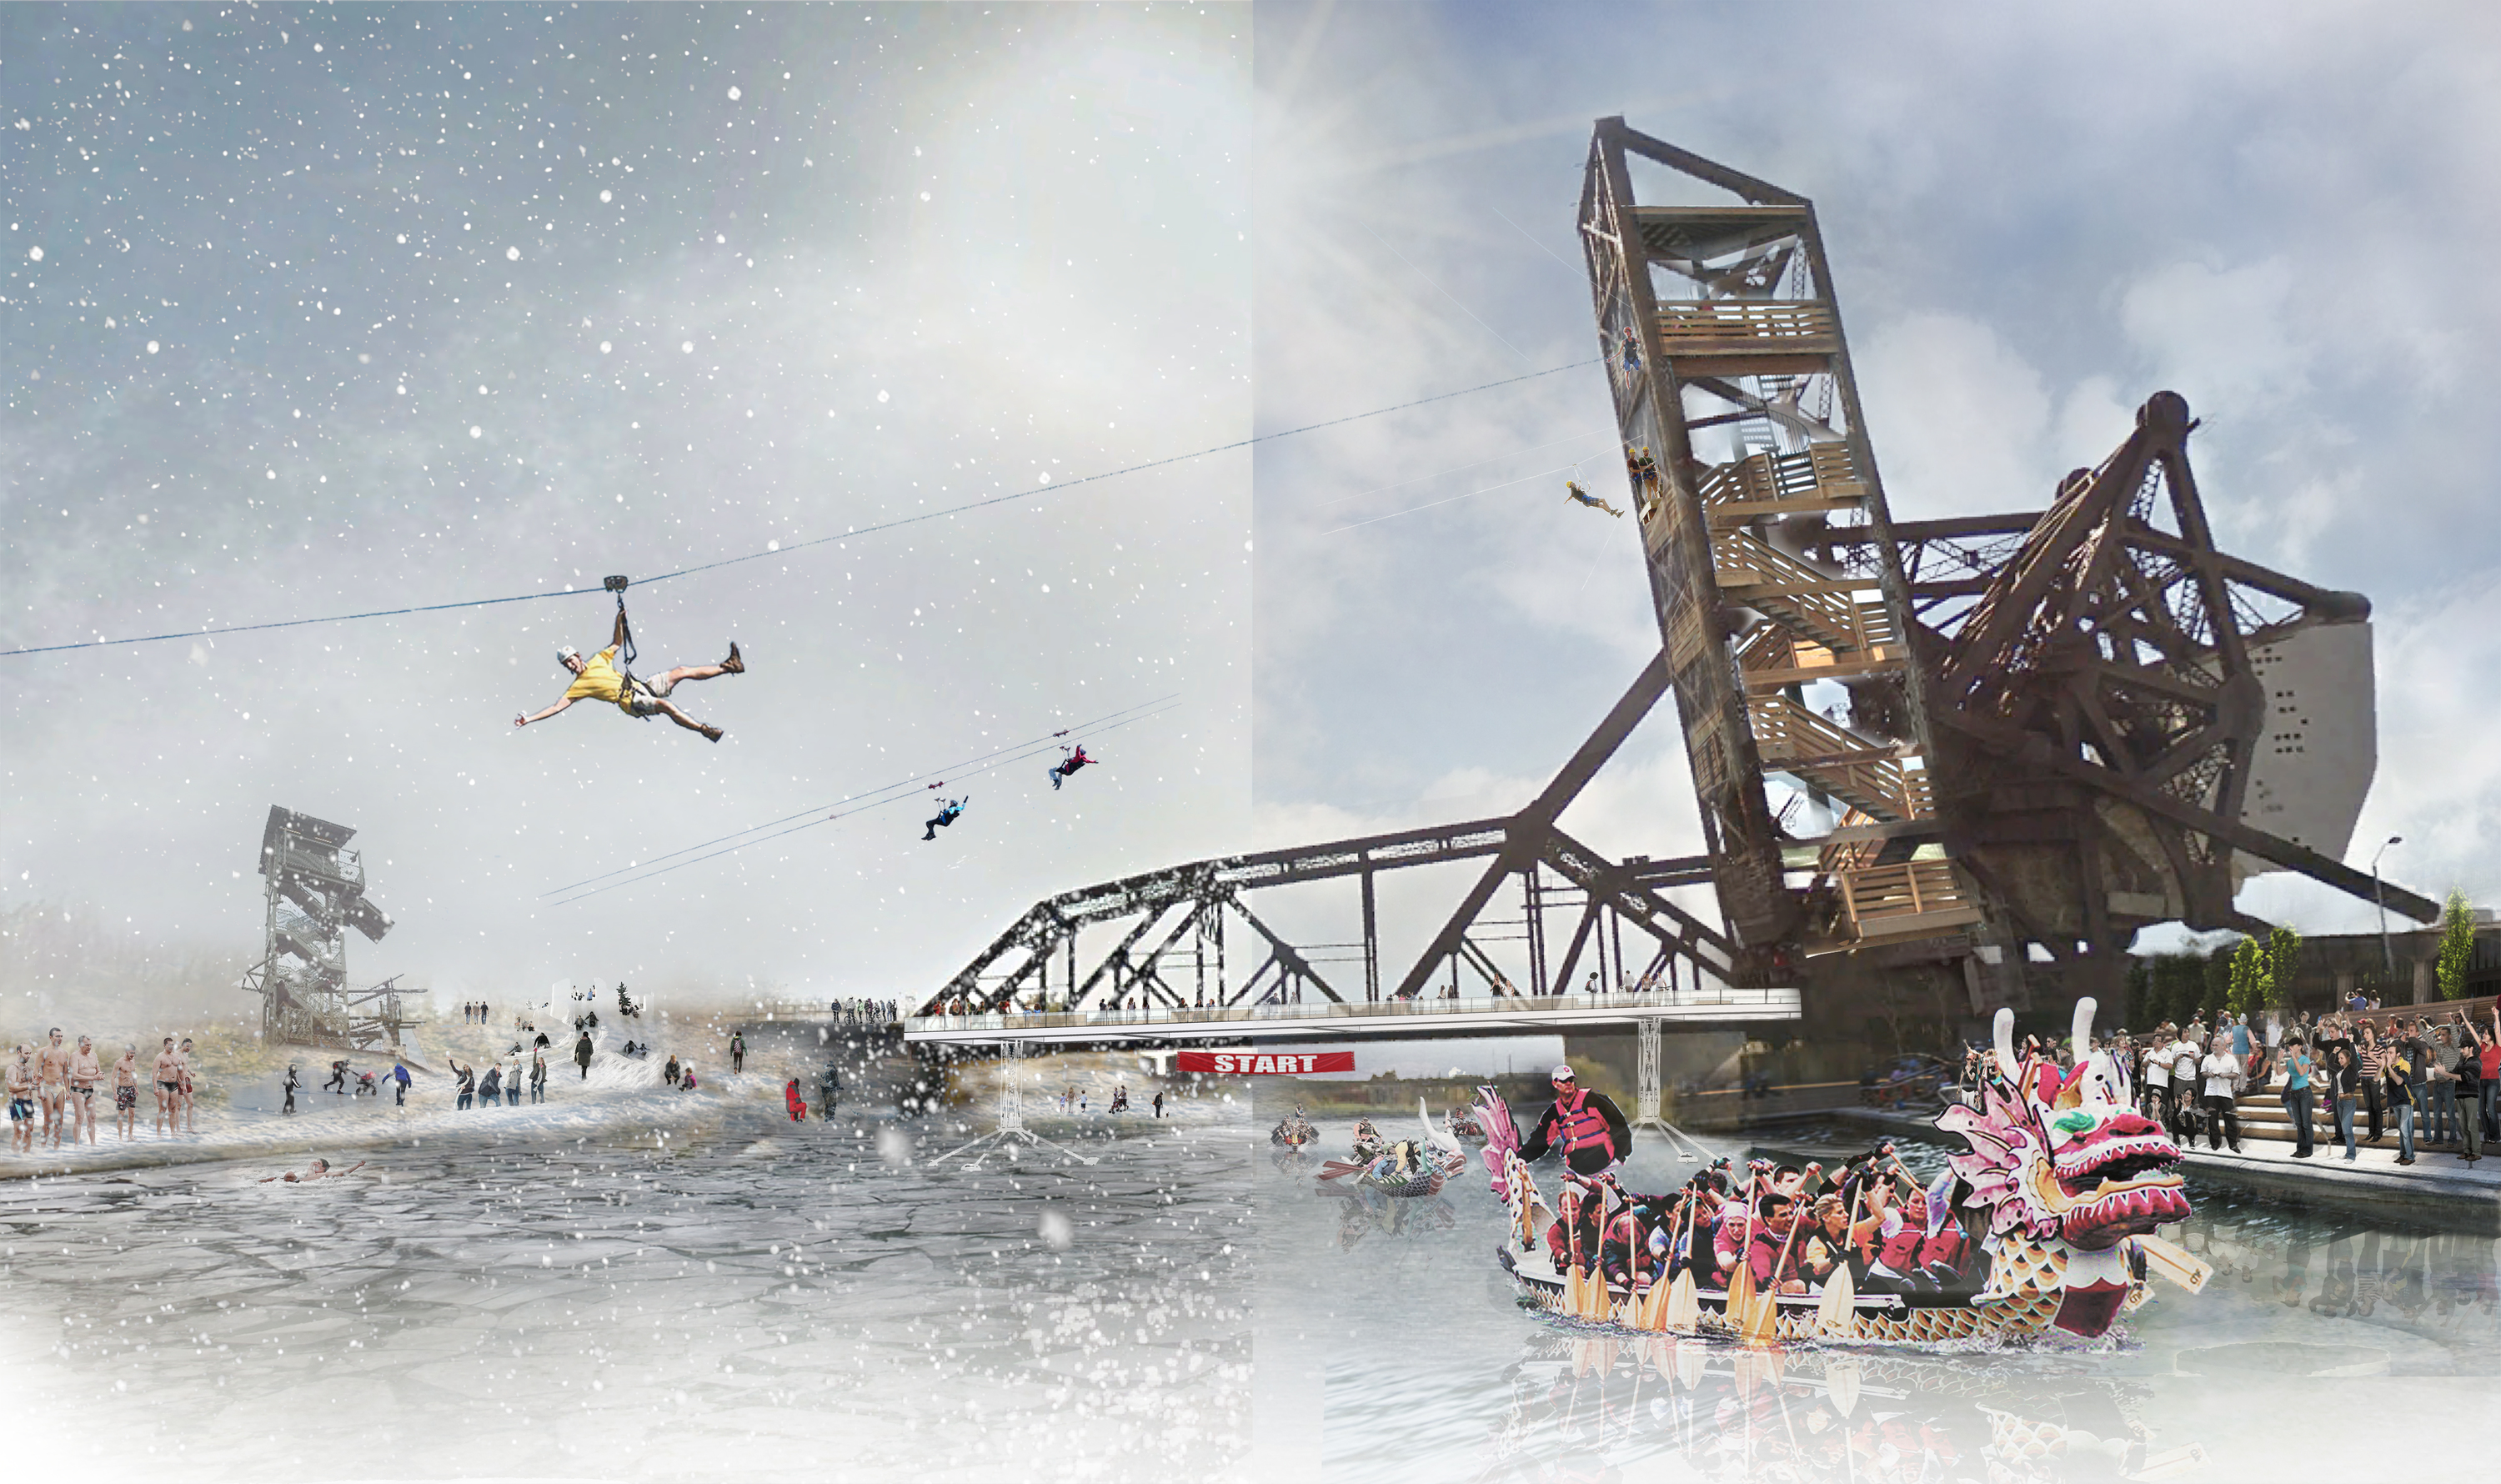 Make that zip line across the Chicago River a real thing